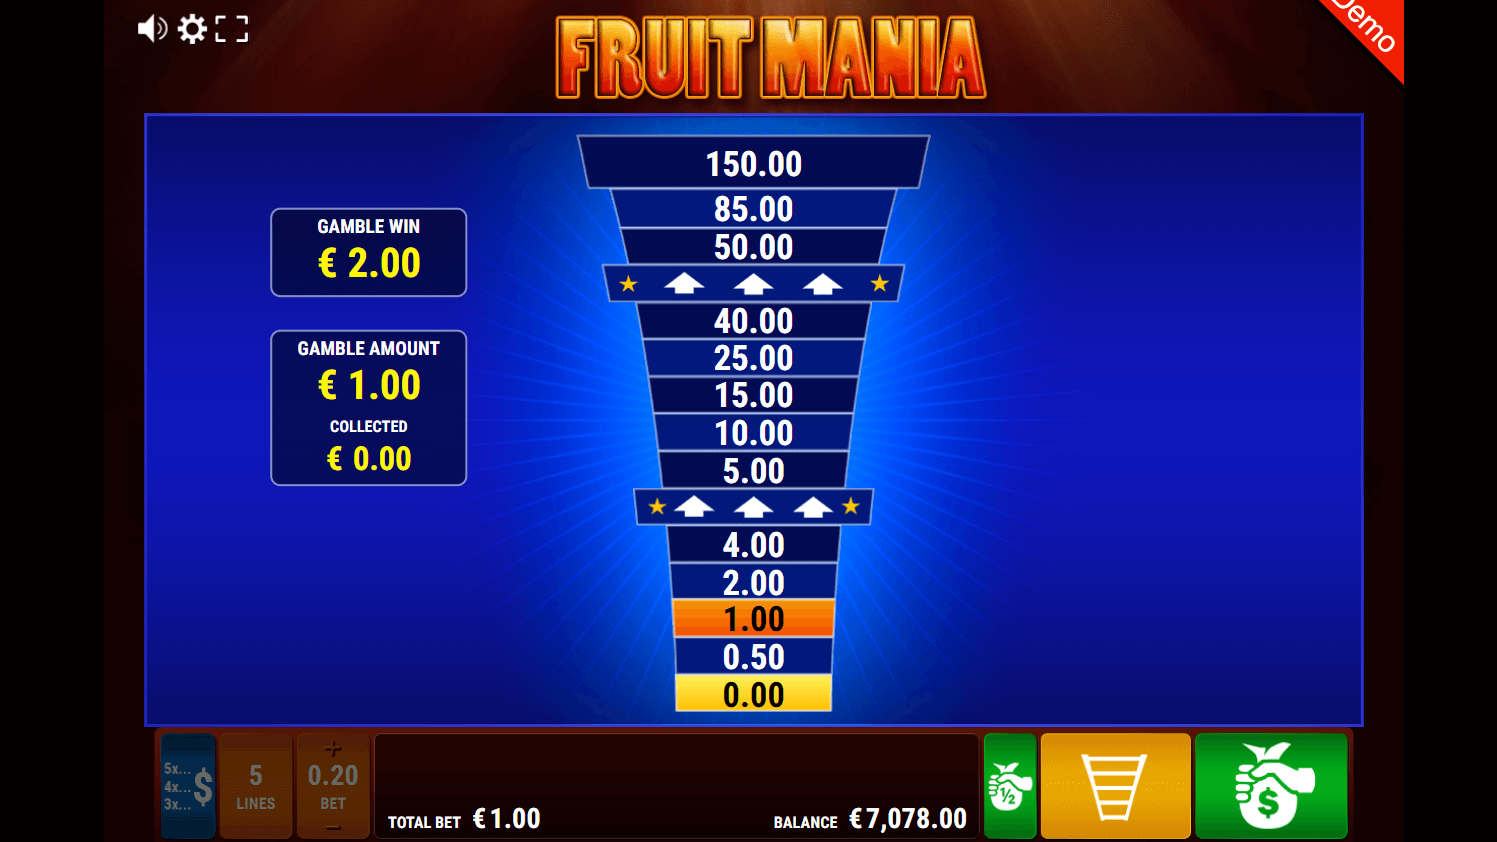 gamomat - fruit mania - gamble ladder- casinogroundsdotcom